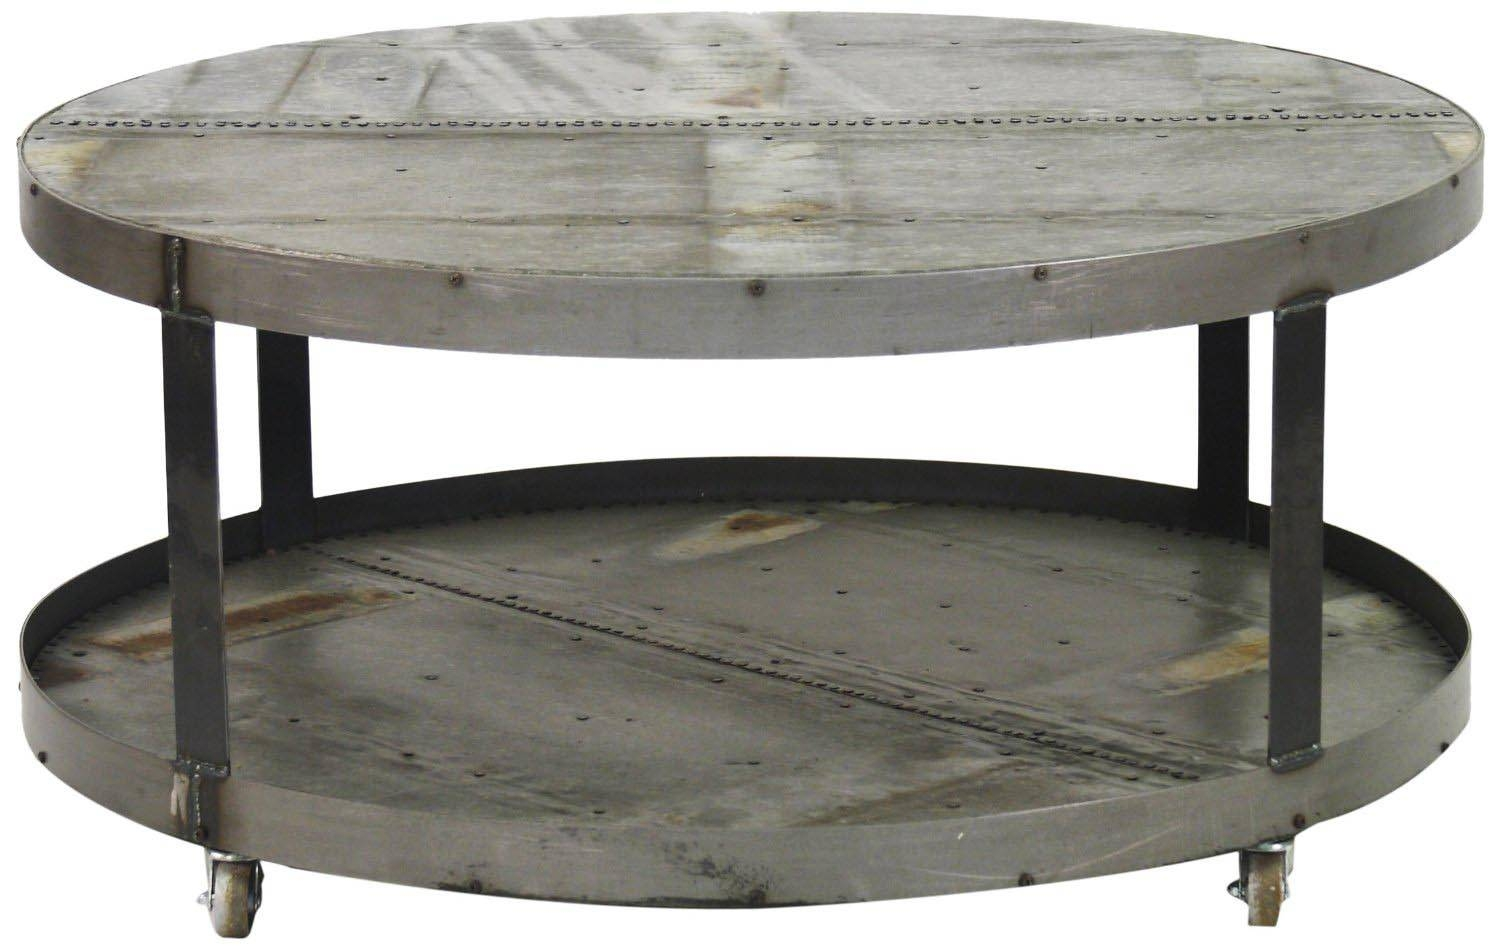 Oversized Round Coffee Table | Coffee Table Design Ideas within Oversized Round Coffee Tables (Image 26 of 30)